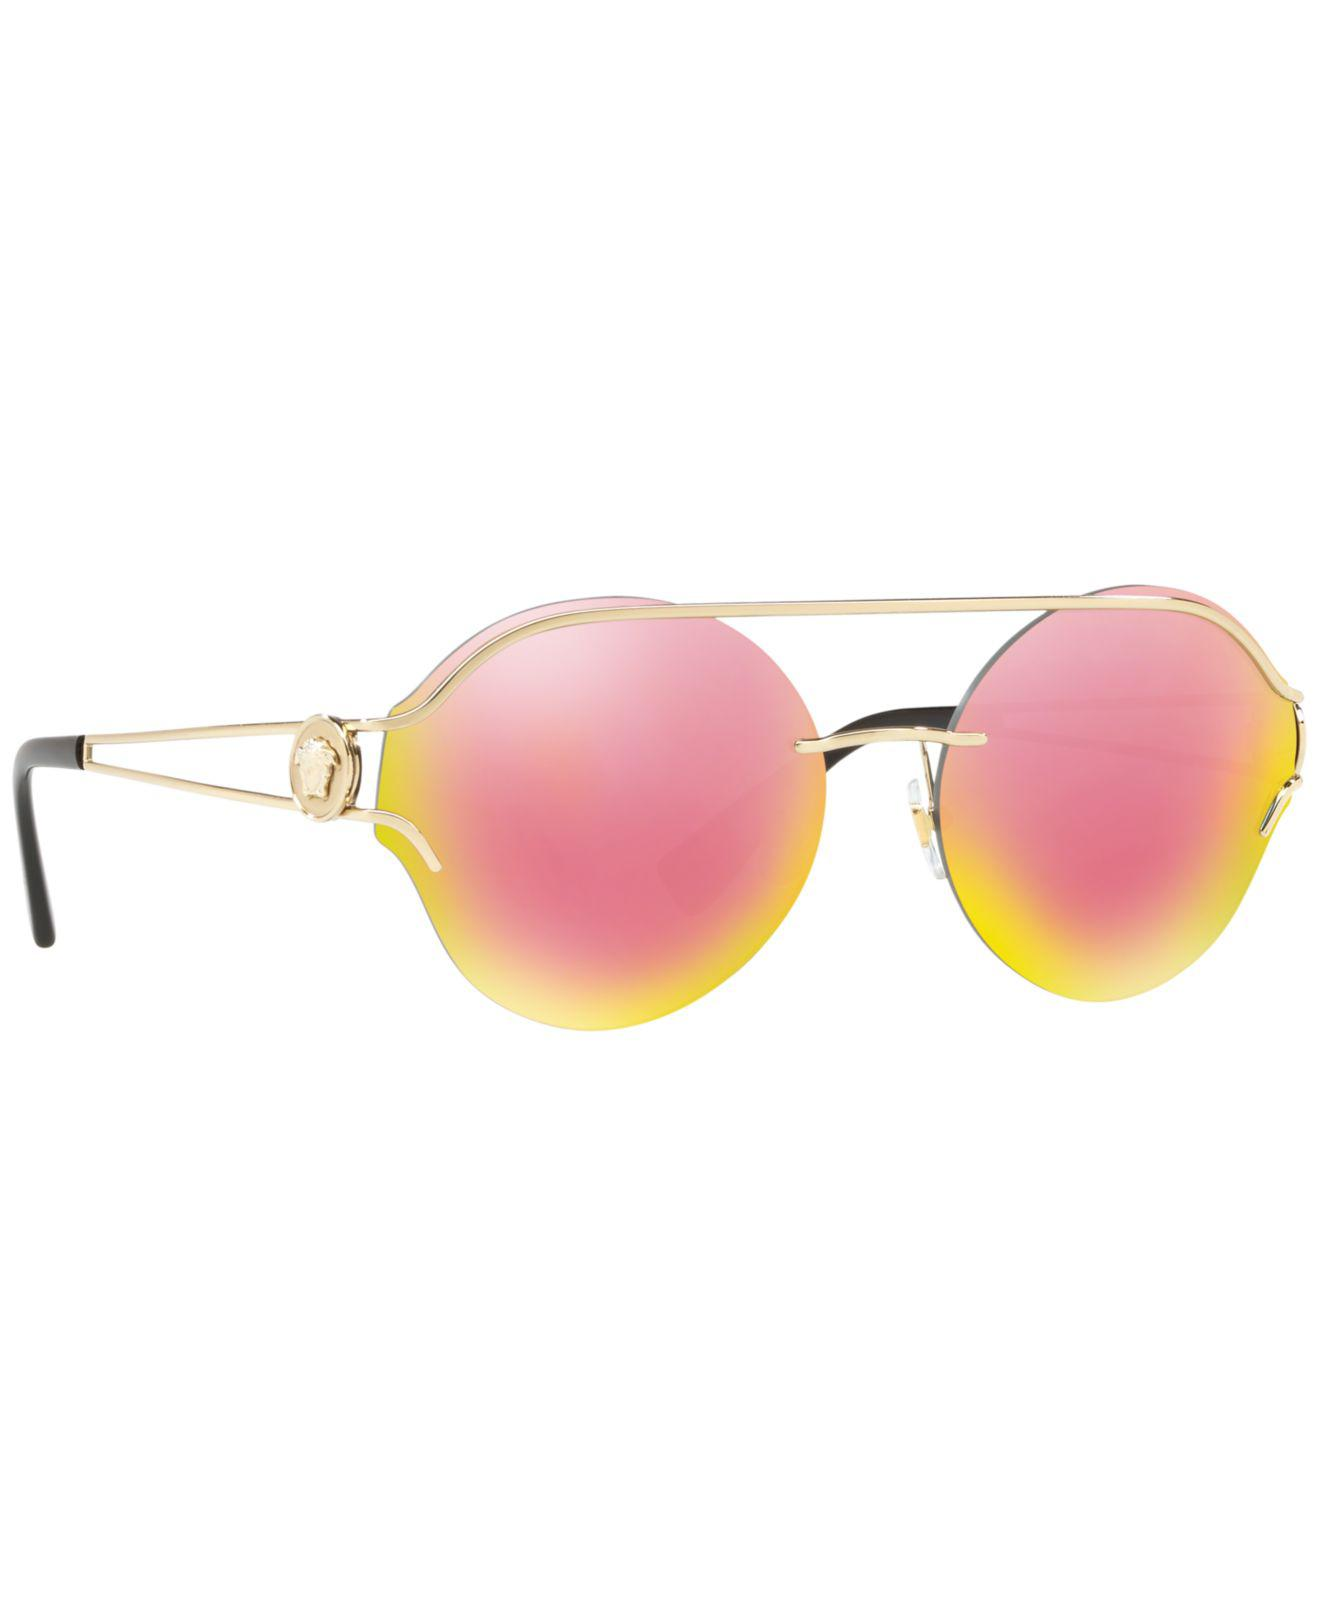 3a6b5908c6a51 Lyst - Versace Forked Metal Round Rimless Sunglasses